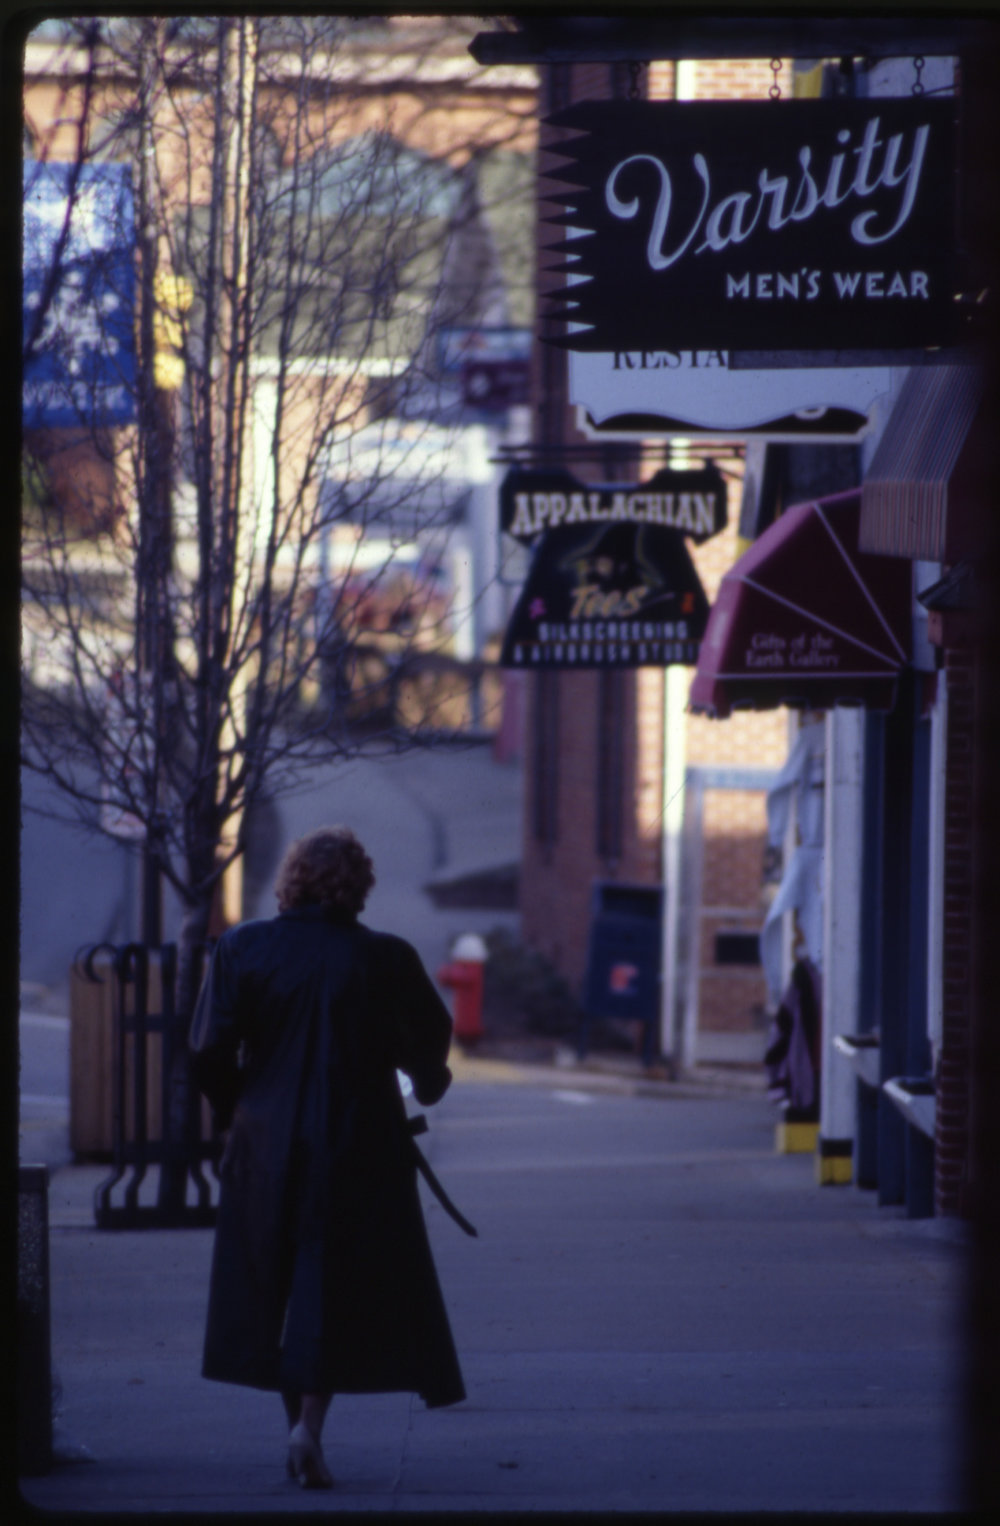 A woman walks east on West King Street toward the intersection with Appalachian Street during the 1990s. Image courtesy of the Downtown Boone Development Association Collection (Dow-Boo-1-013), Digital Watauga Project.